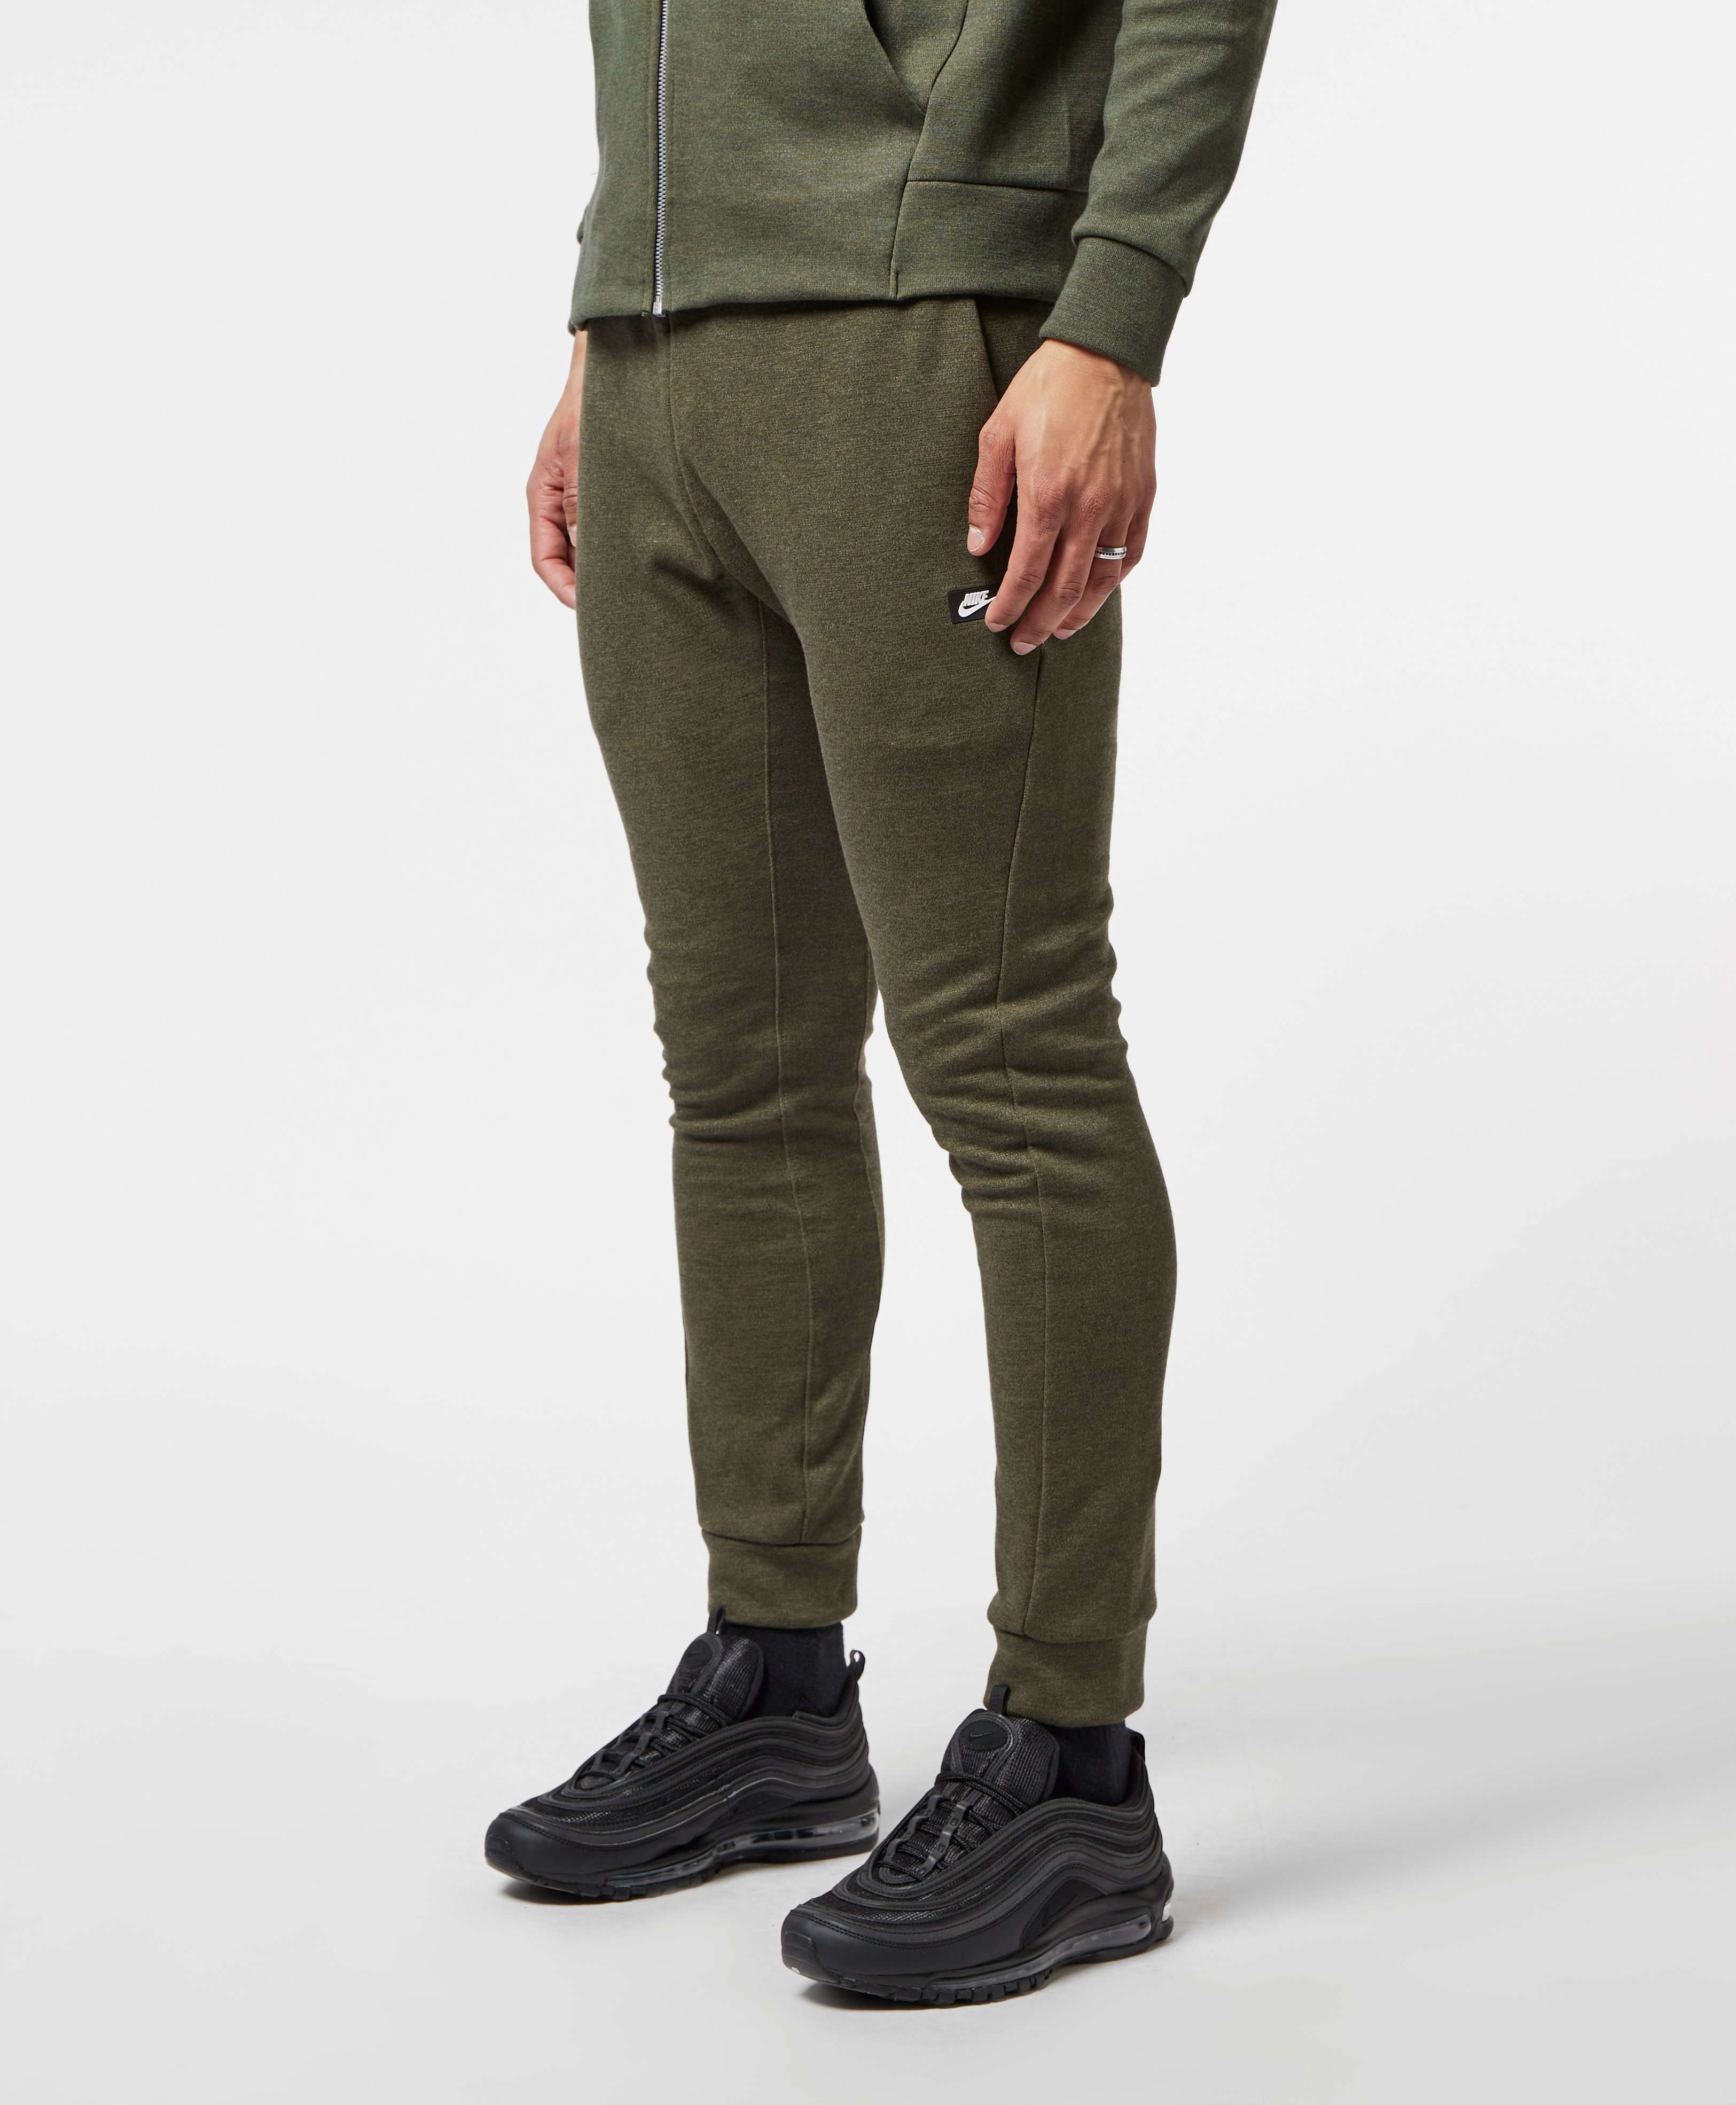 Nike Optic Fleece Pants